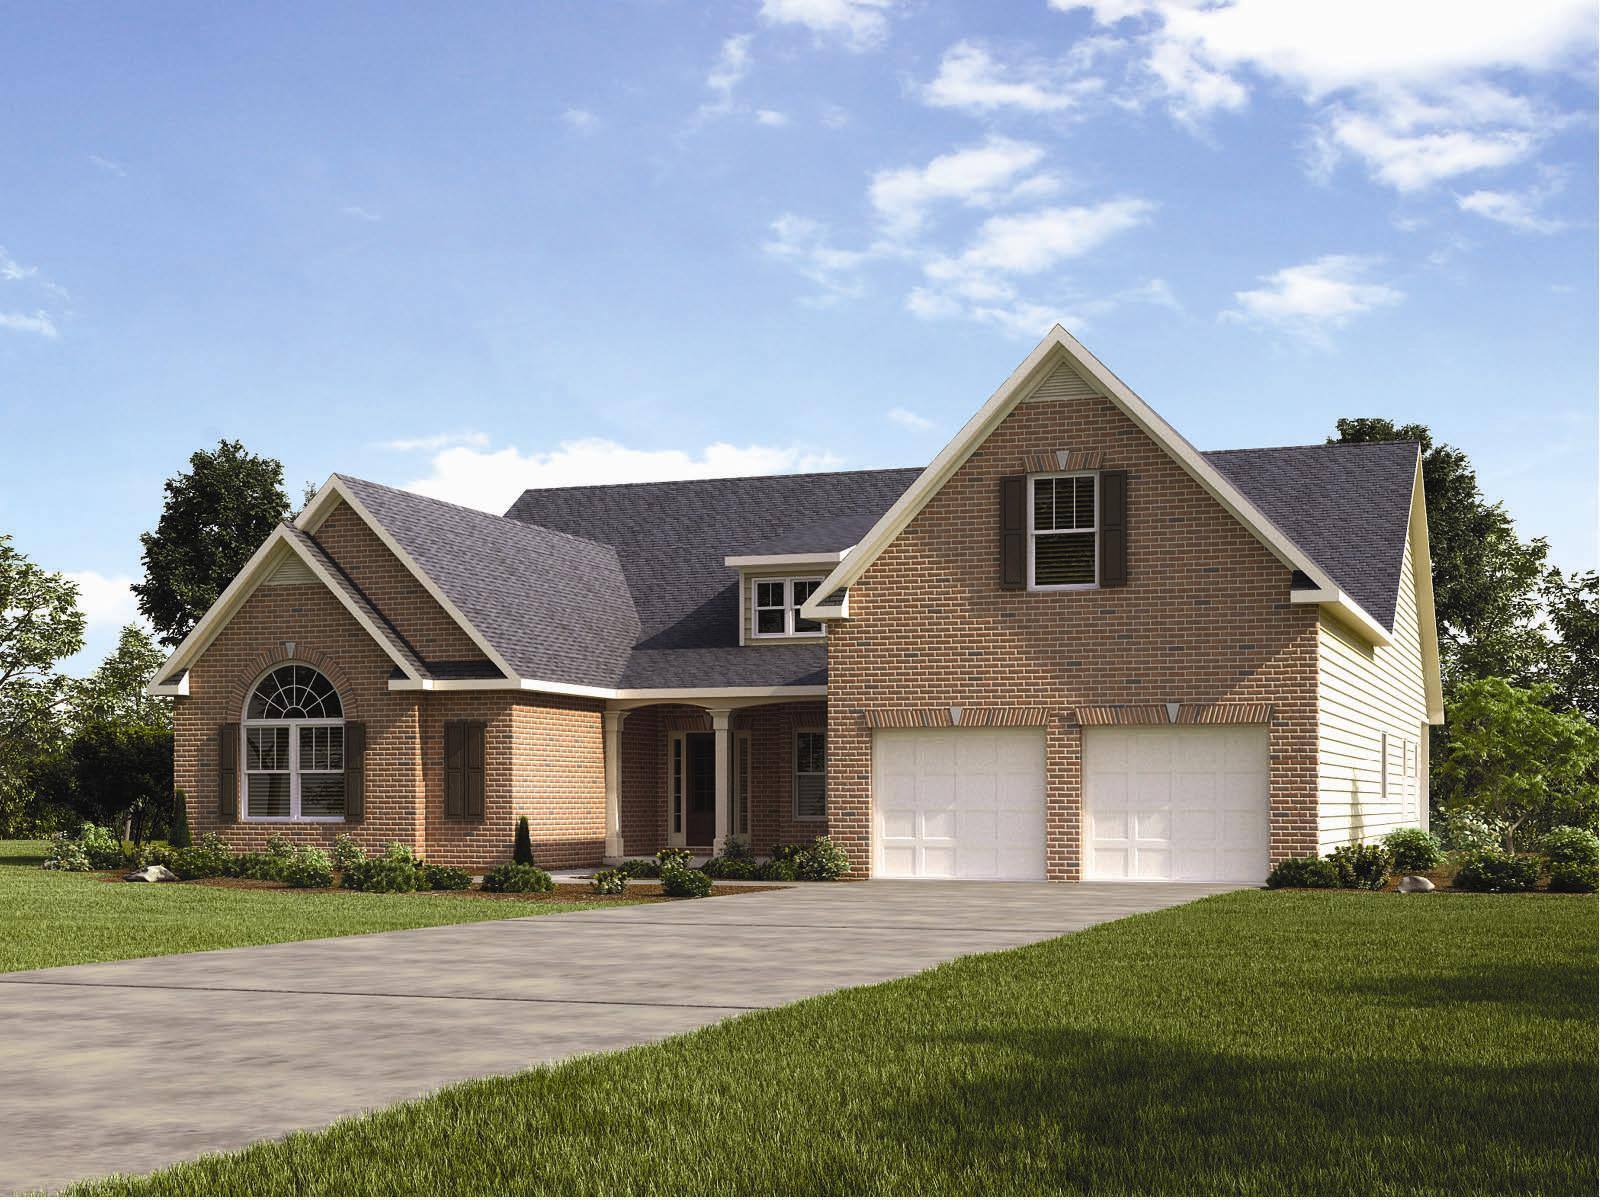 New construction homes plans in greenville county sc for House plans greenville sc